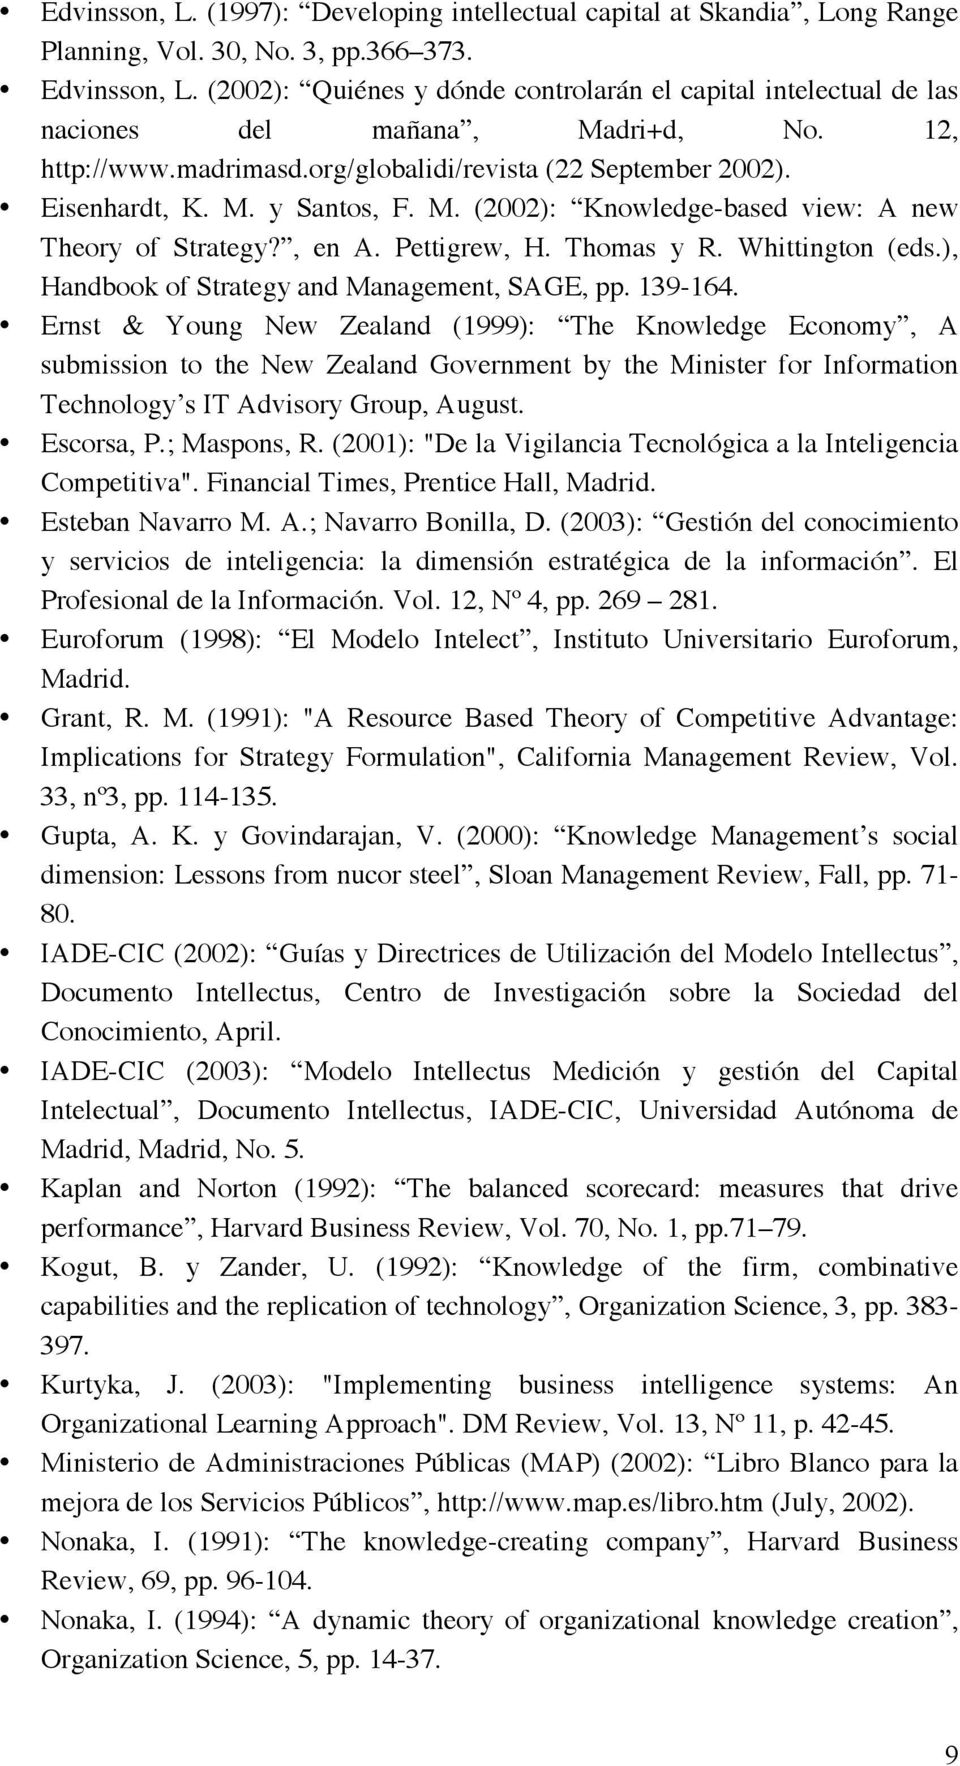 M. (2002): Knowledge-based view: A new Theory of Strategy?, en A. Pettigrew, H. Thomas y R. Whittington (eds.), Handbook of Strategy and Management, SAGE, pp. 139-164.